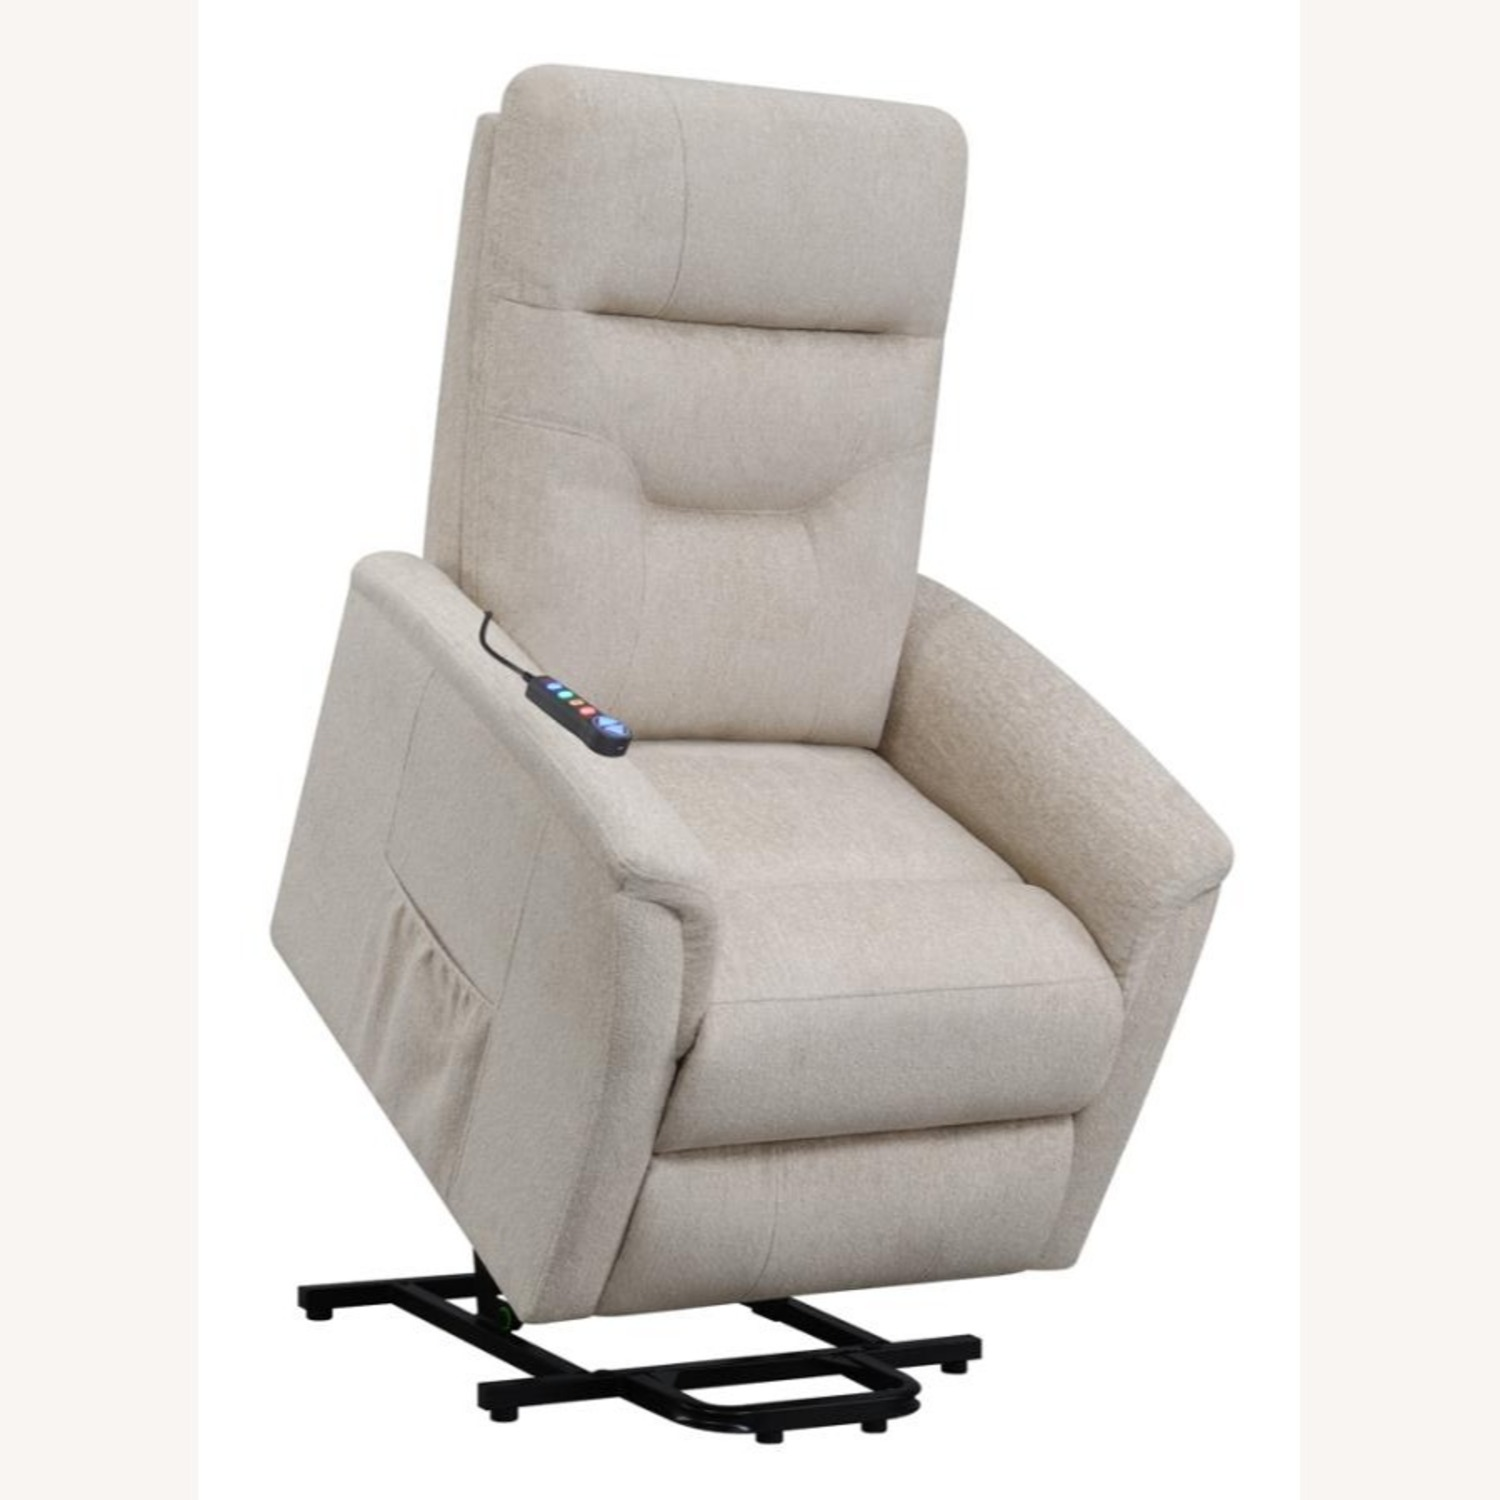 Power Lift Massage Chair In Beige Fabric - image-3